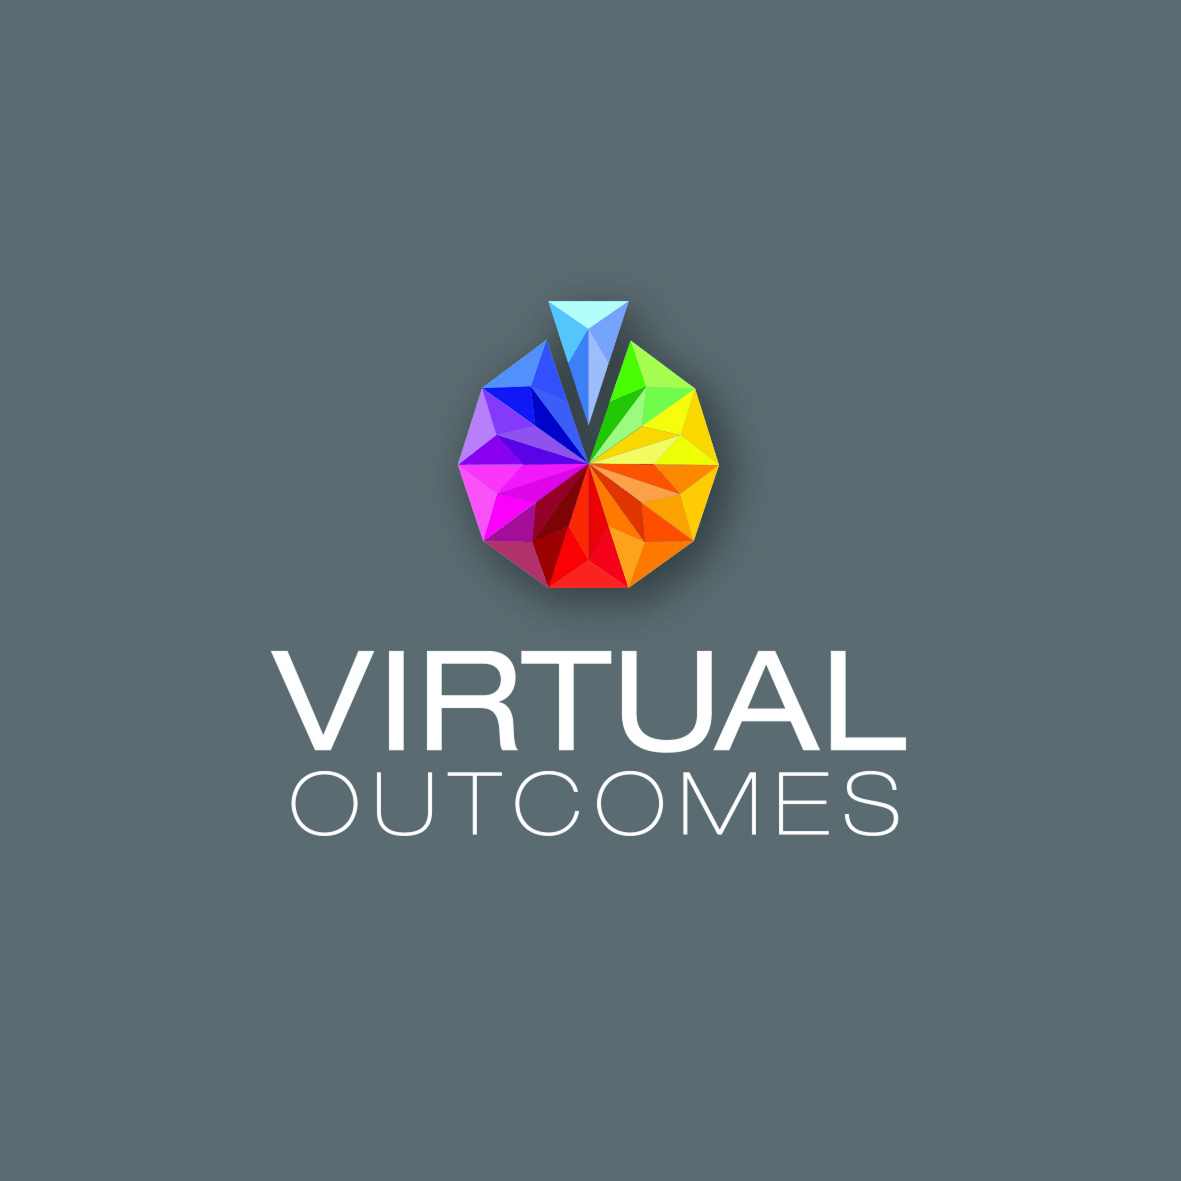 VirtualOutcomes Ltd